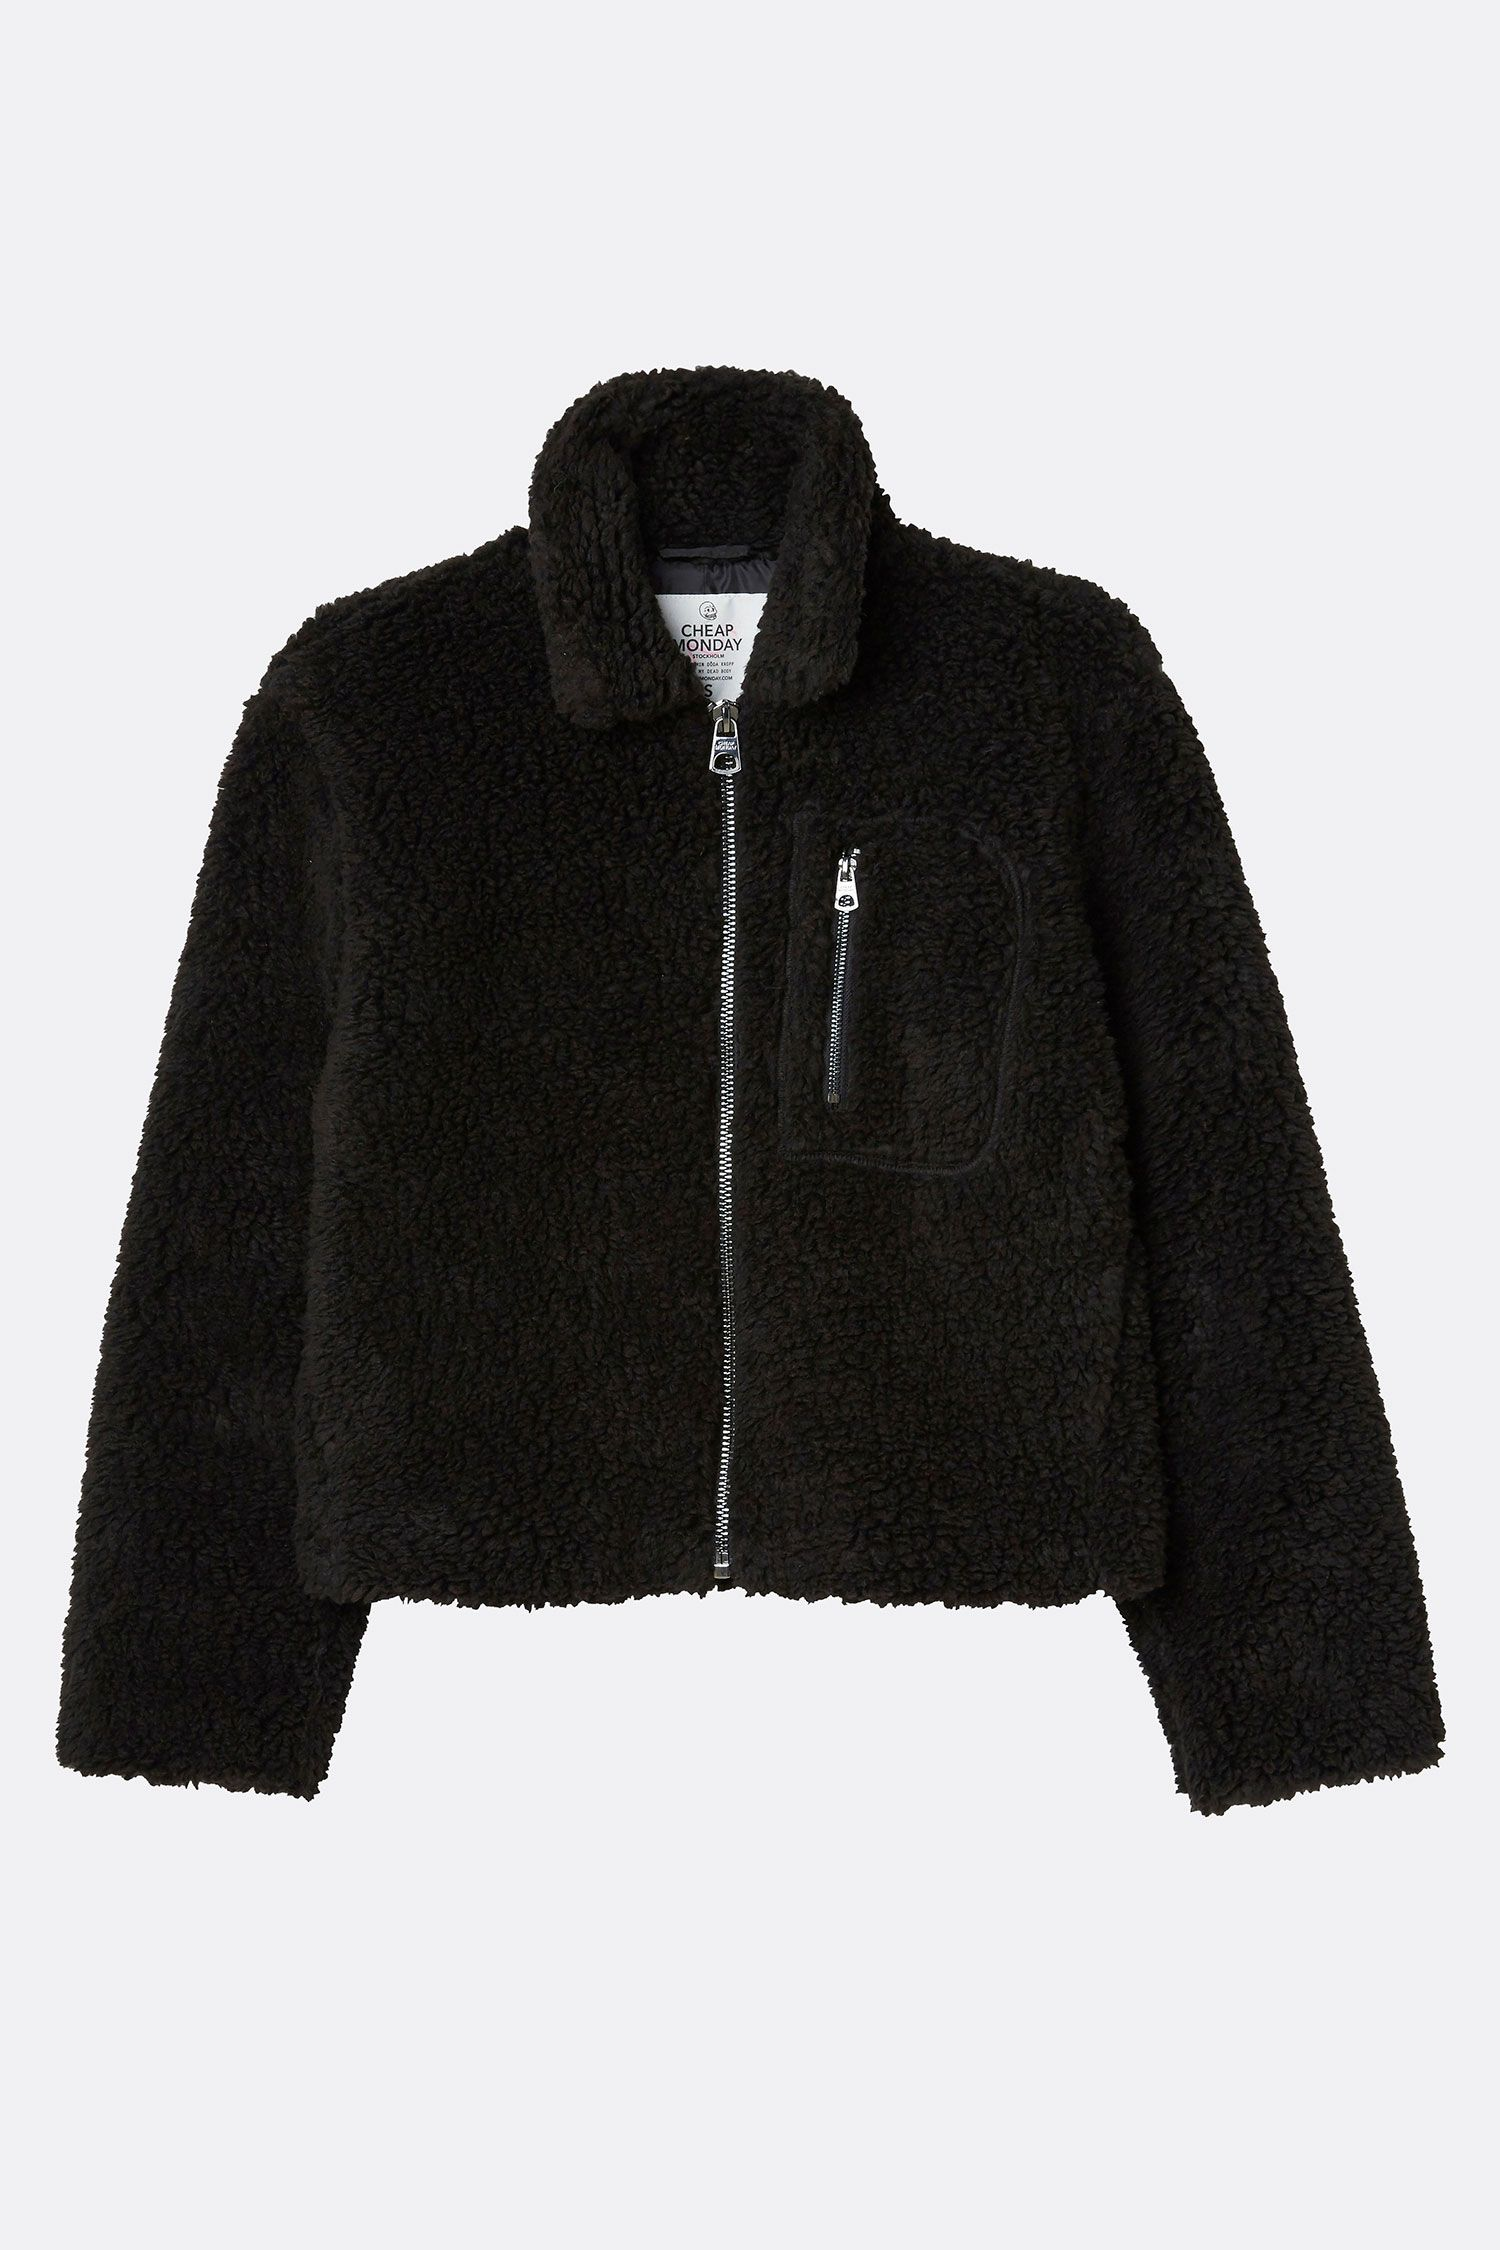 524f4fca4f Cheap Monday Image 8 of Function Fleece Jacket in Black